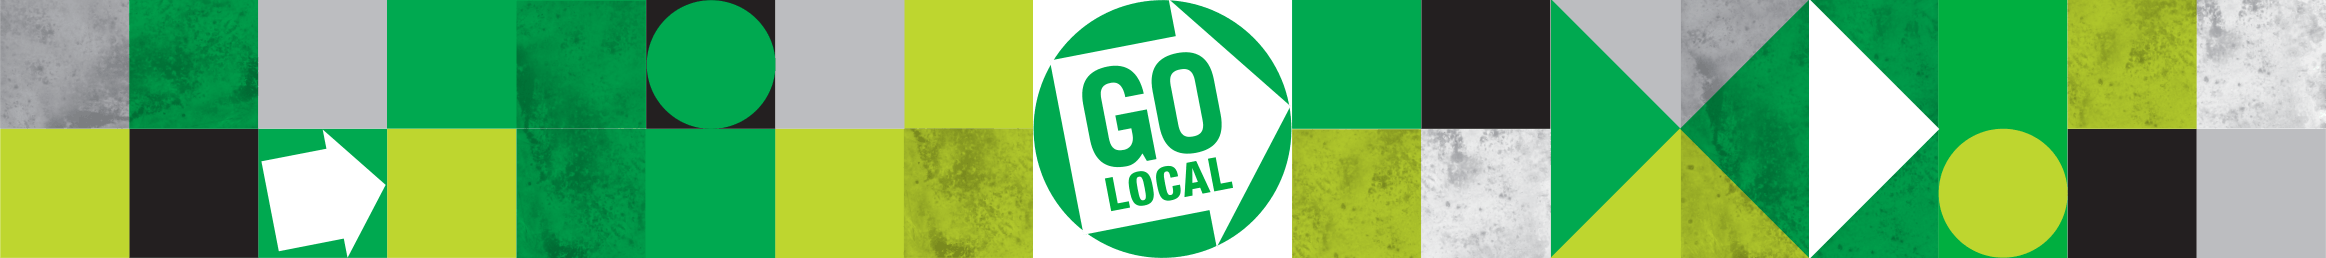 GO Local Banner